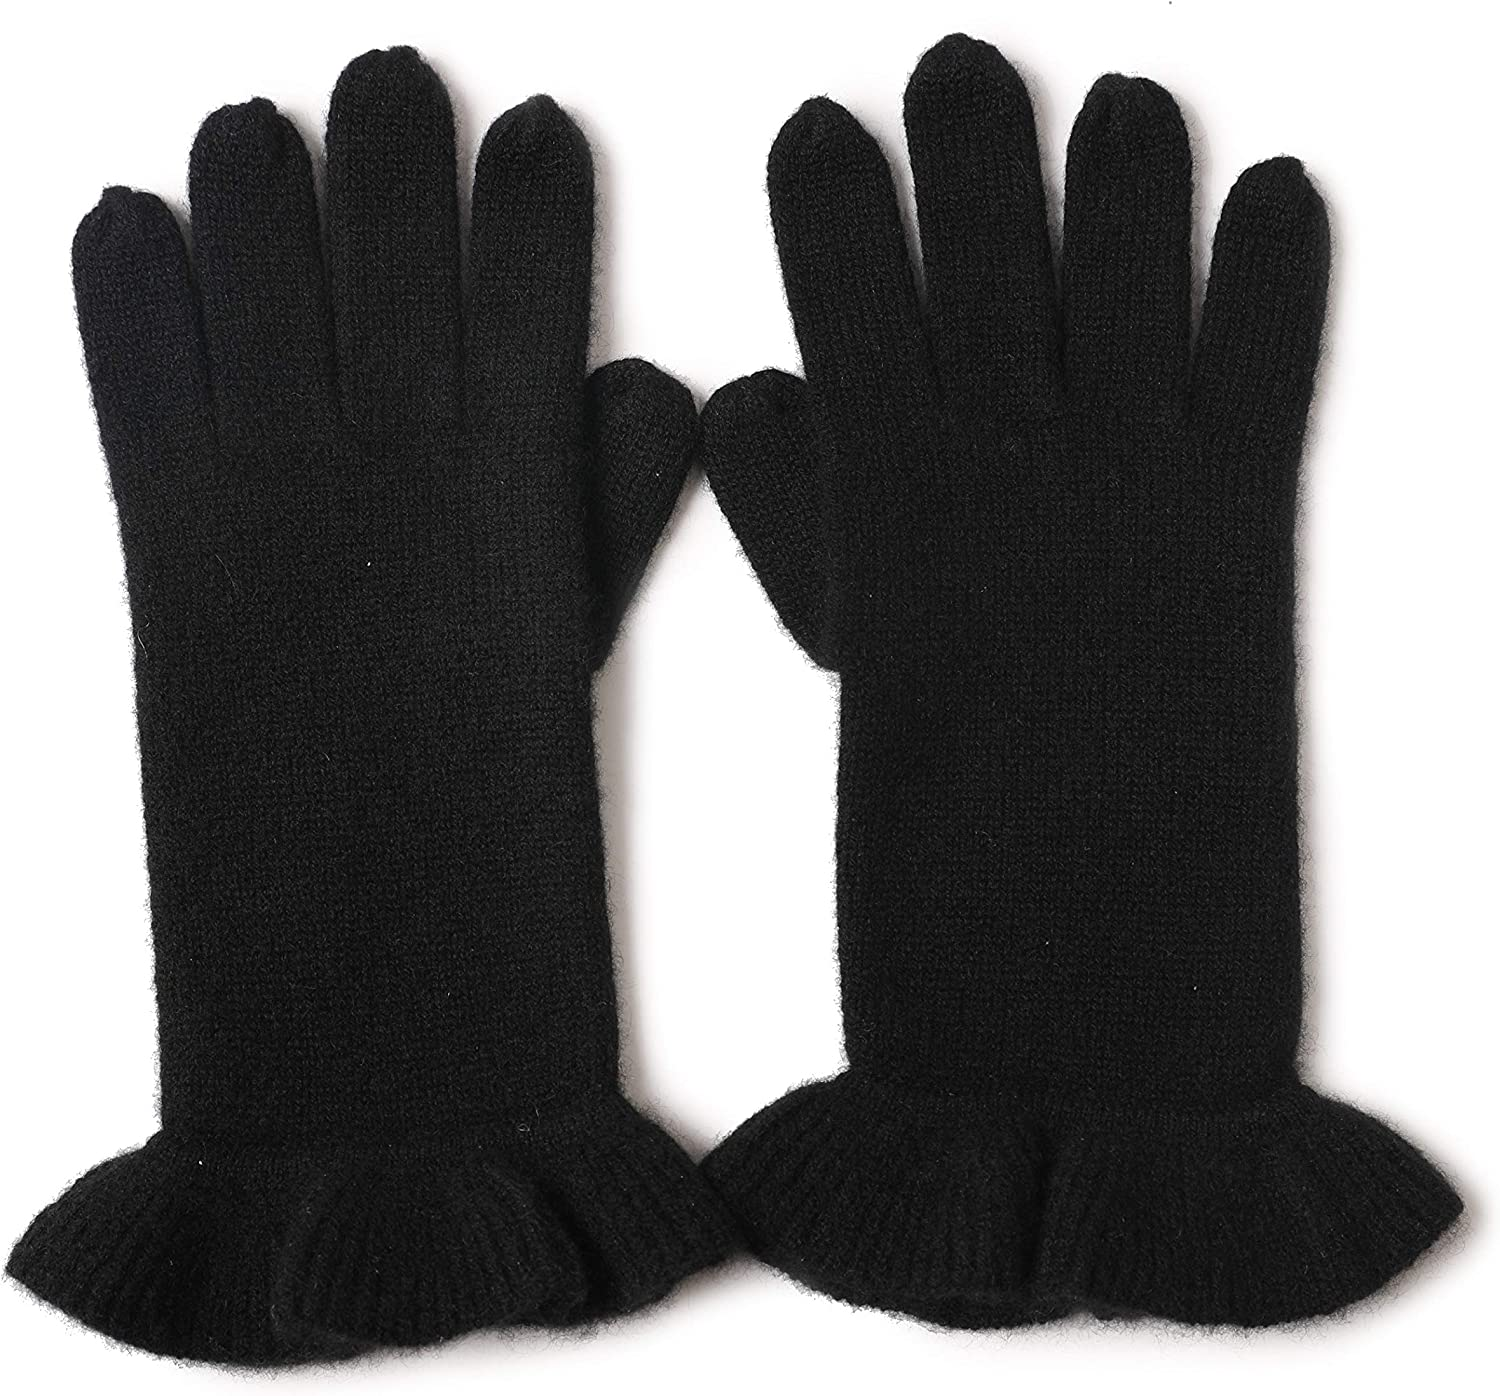 Winter Fashion Womens Pure Color Ruffled Five-finger Gloves Warm 100% Cashmere Knitted Gloves